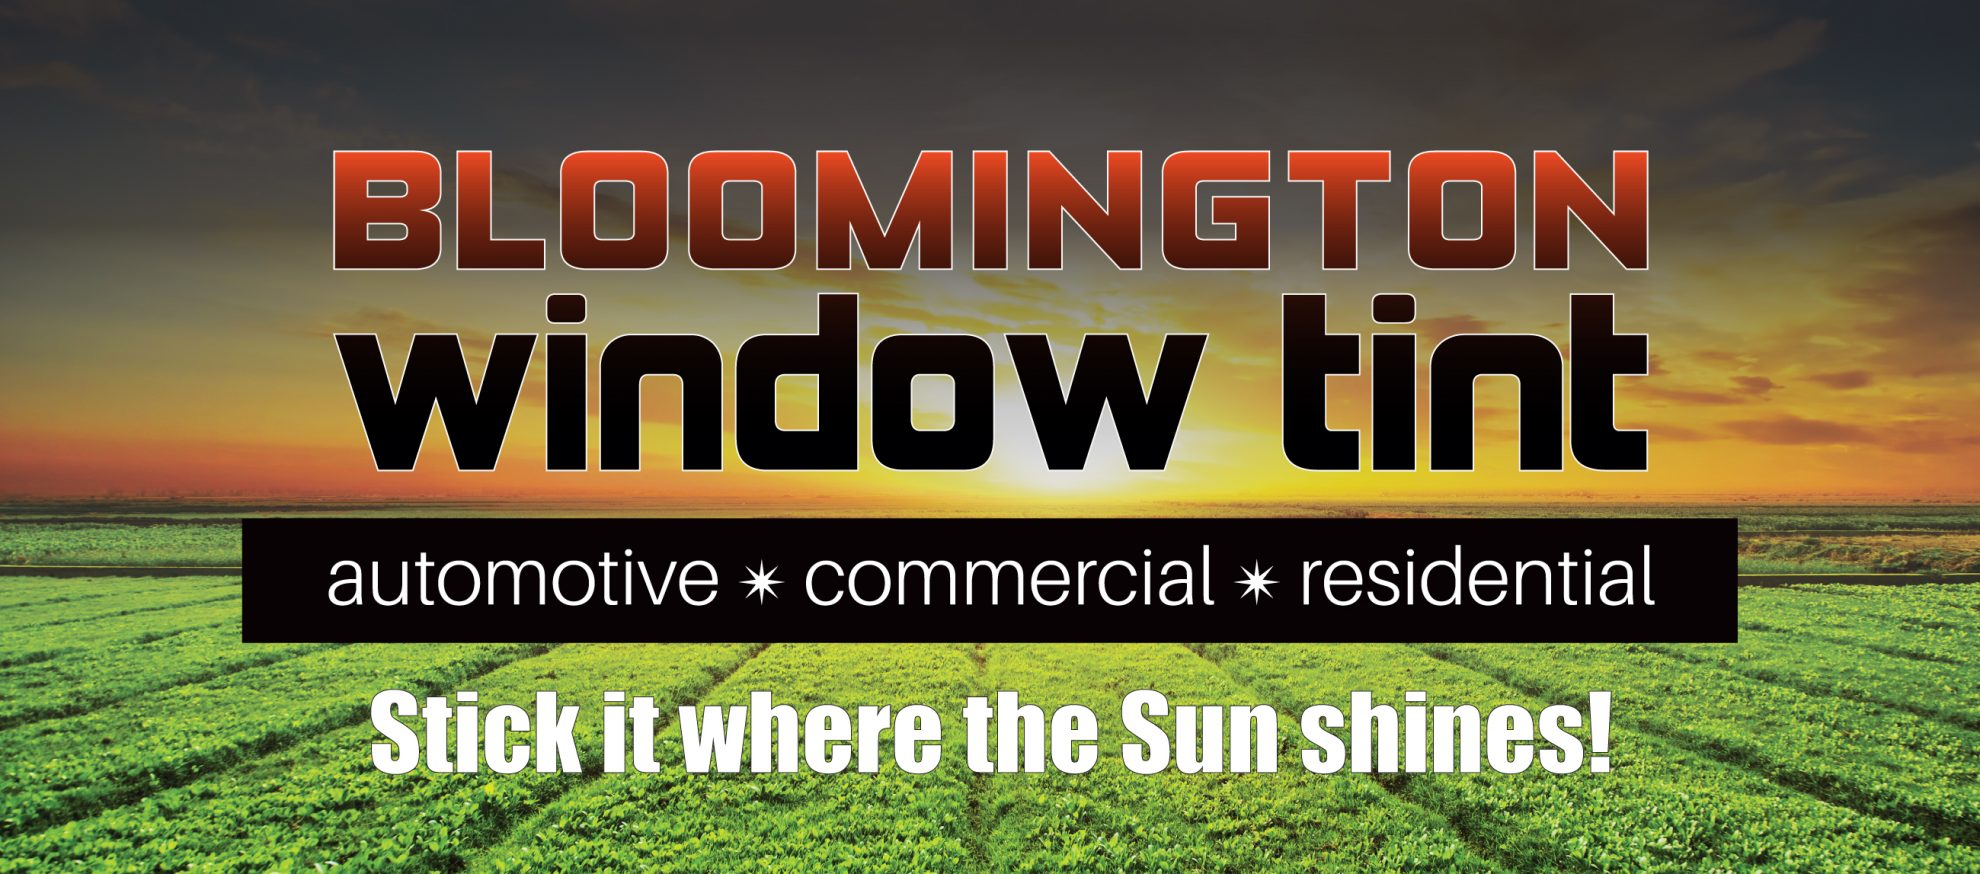 Bloomington Window Tint - Automotive, Commercial, & Residential. Stick it where the Sun shines!